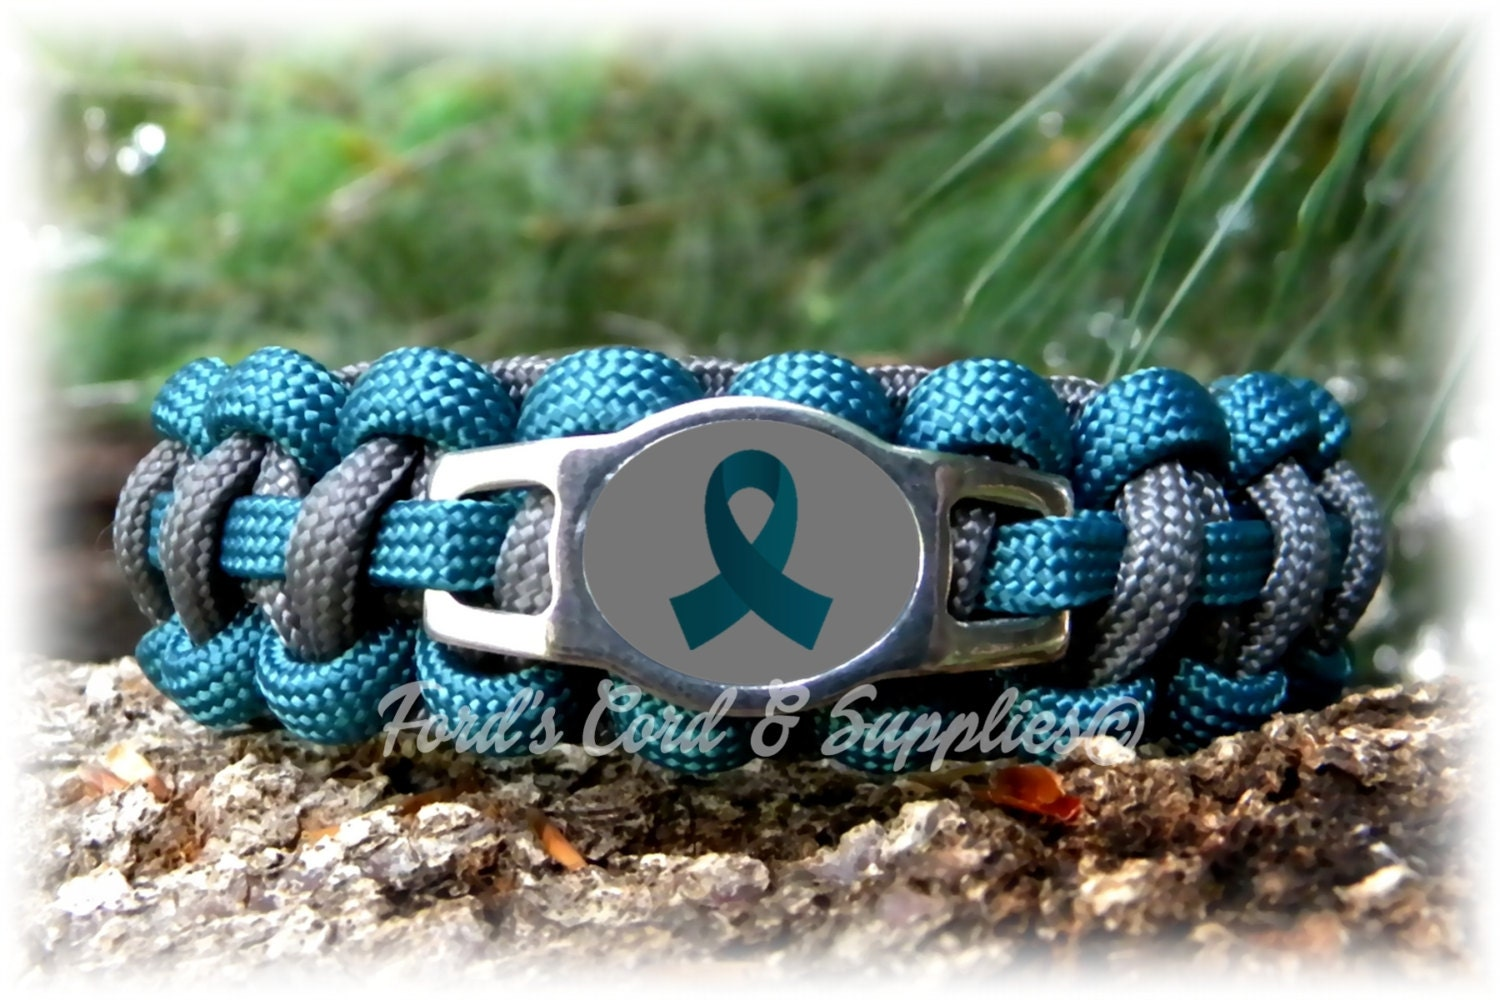 bracelet fullxfull jfhu id in stock medical alert listing any zoom il cord gravis myasthenia